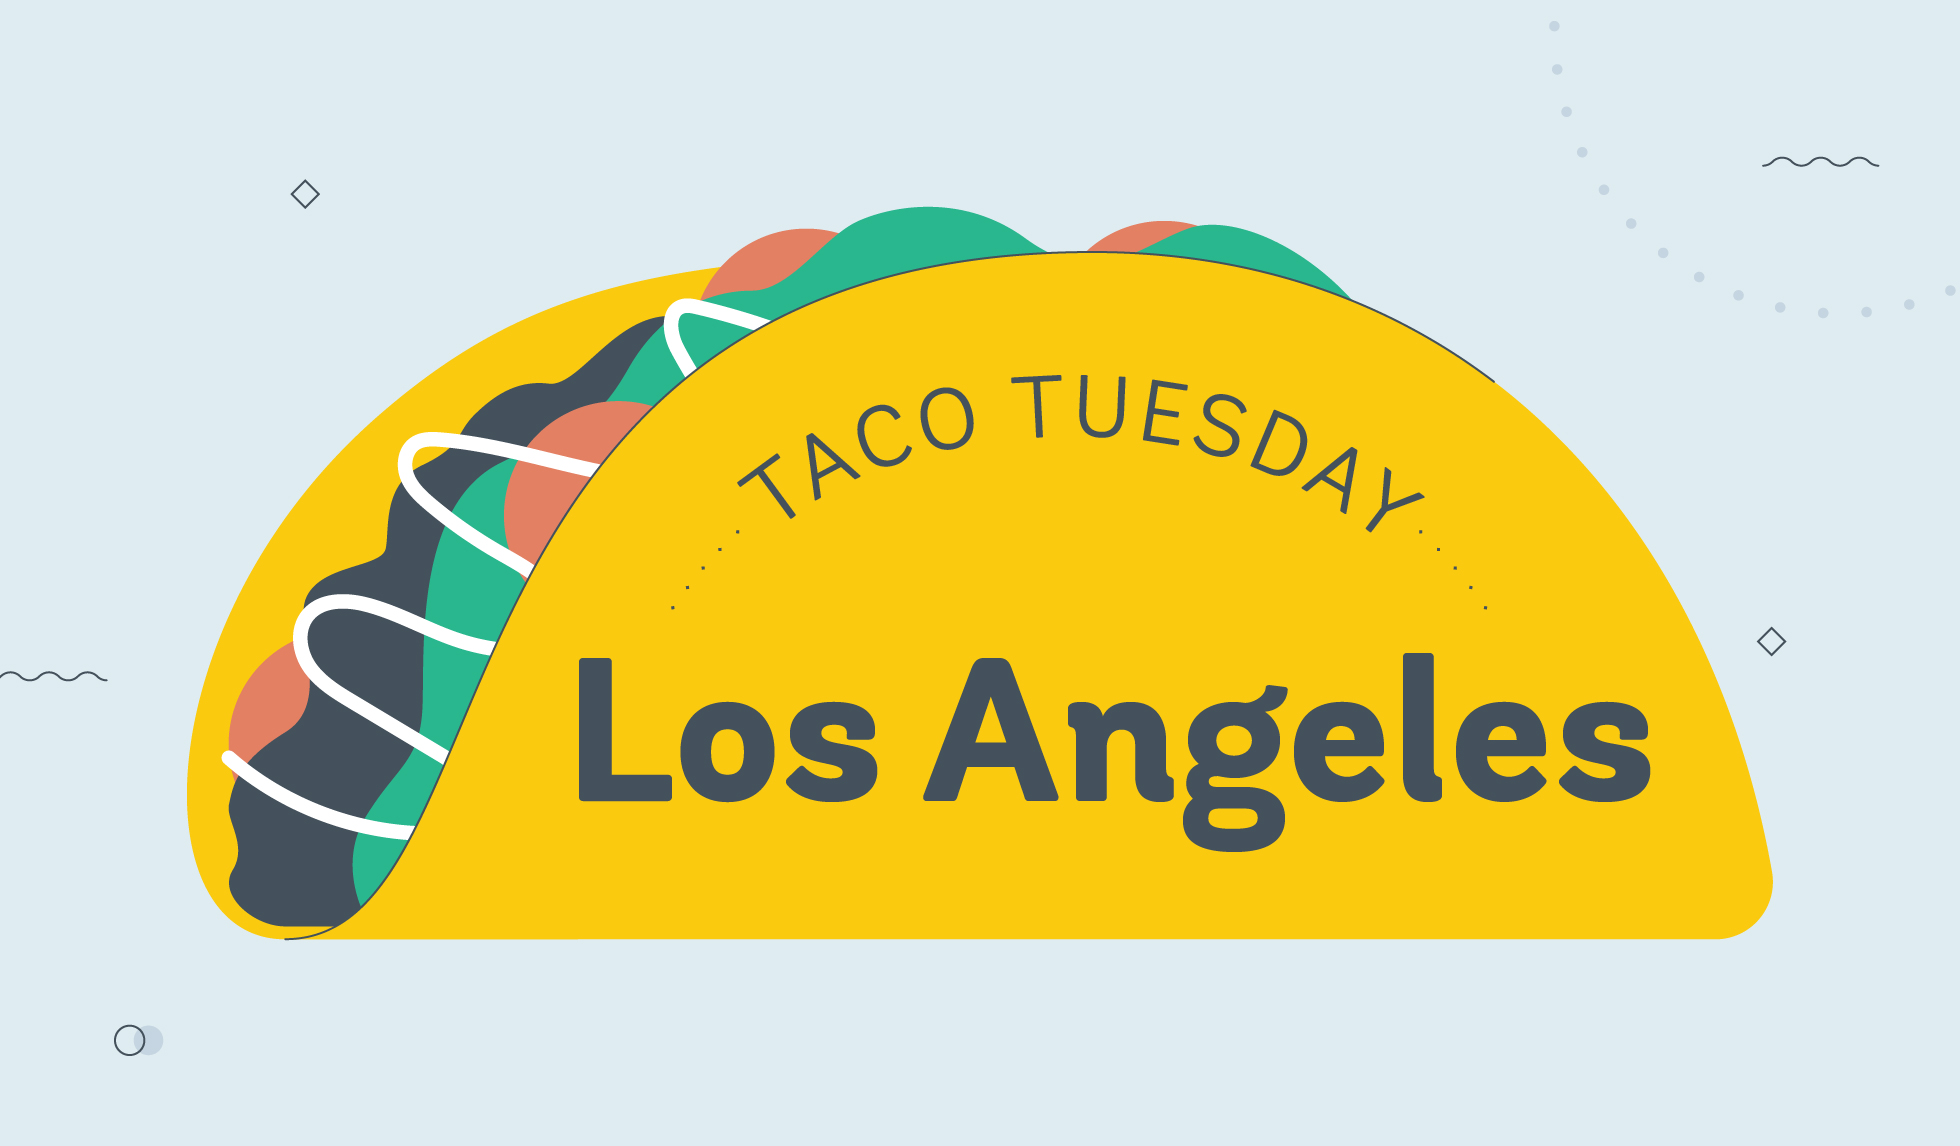 taco tuesday los angeles graphic